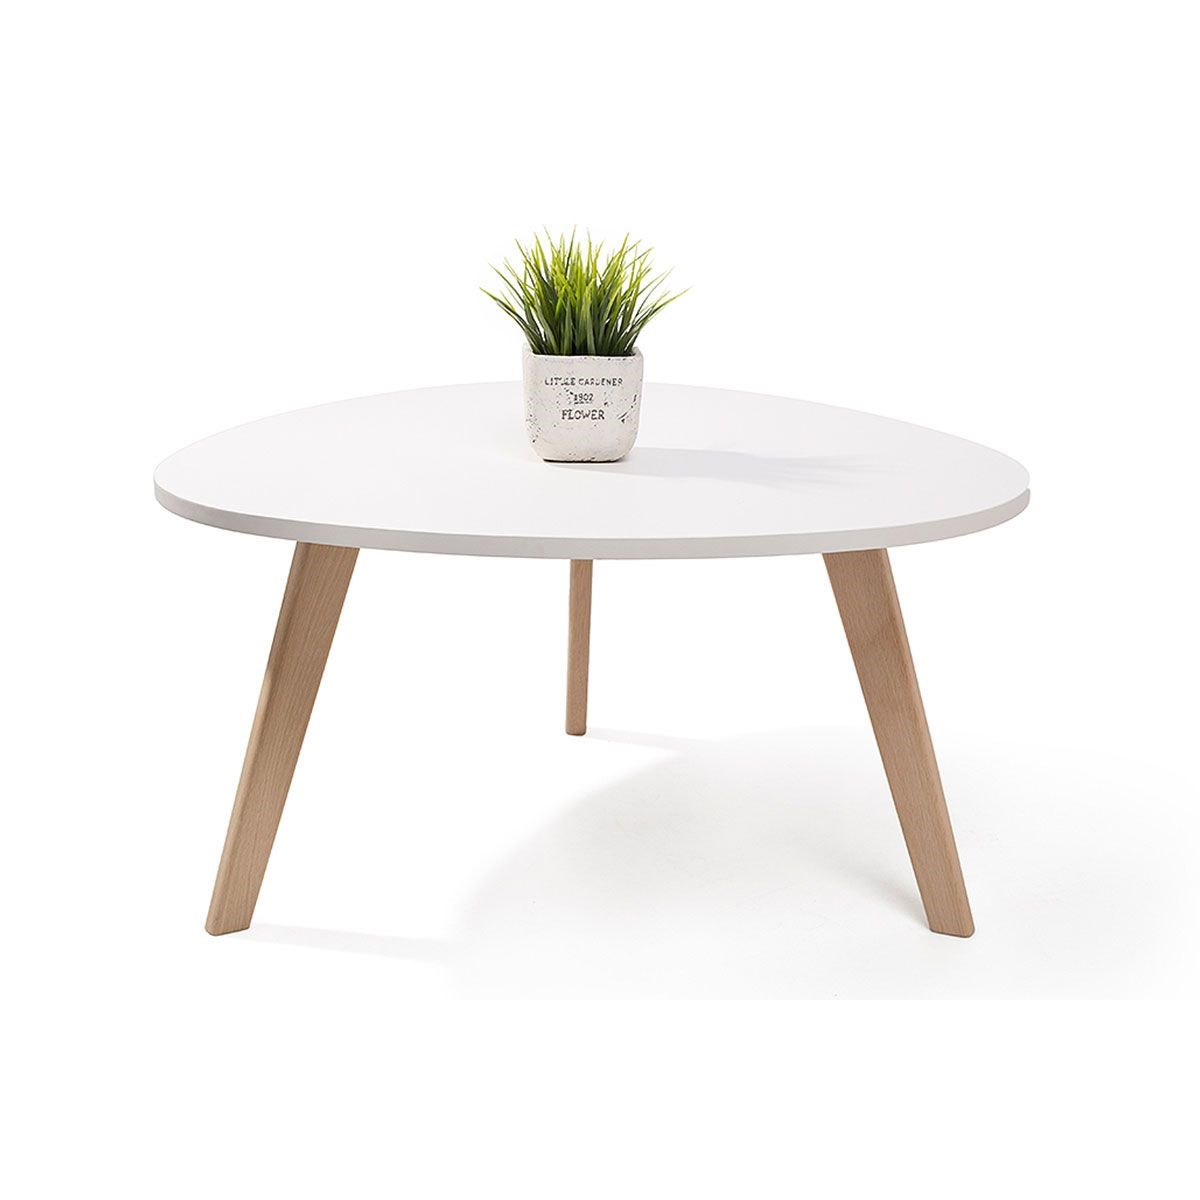 Table Salon Scandinave : Table basse scandinave alta